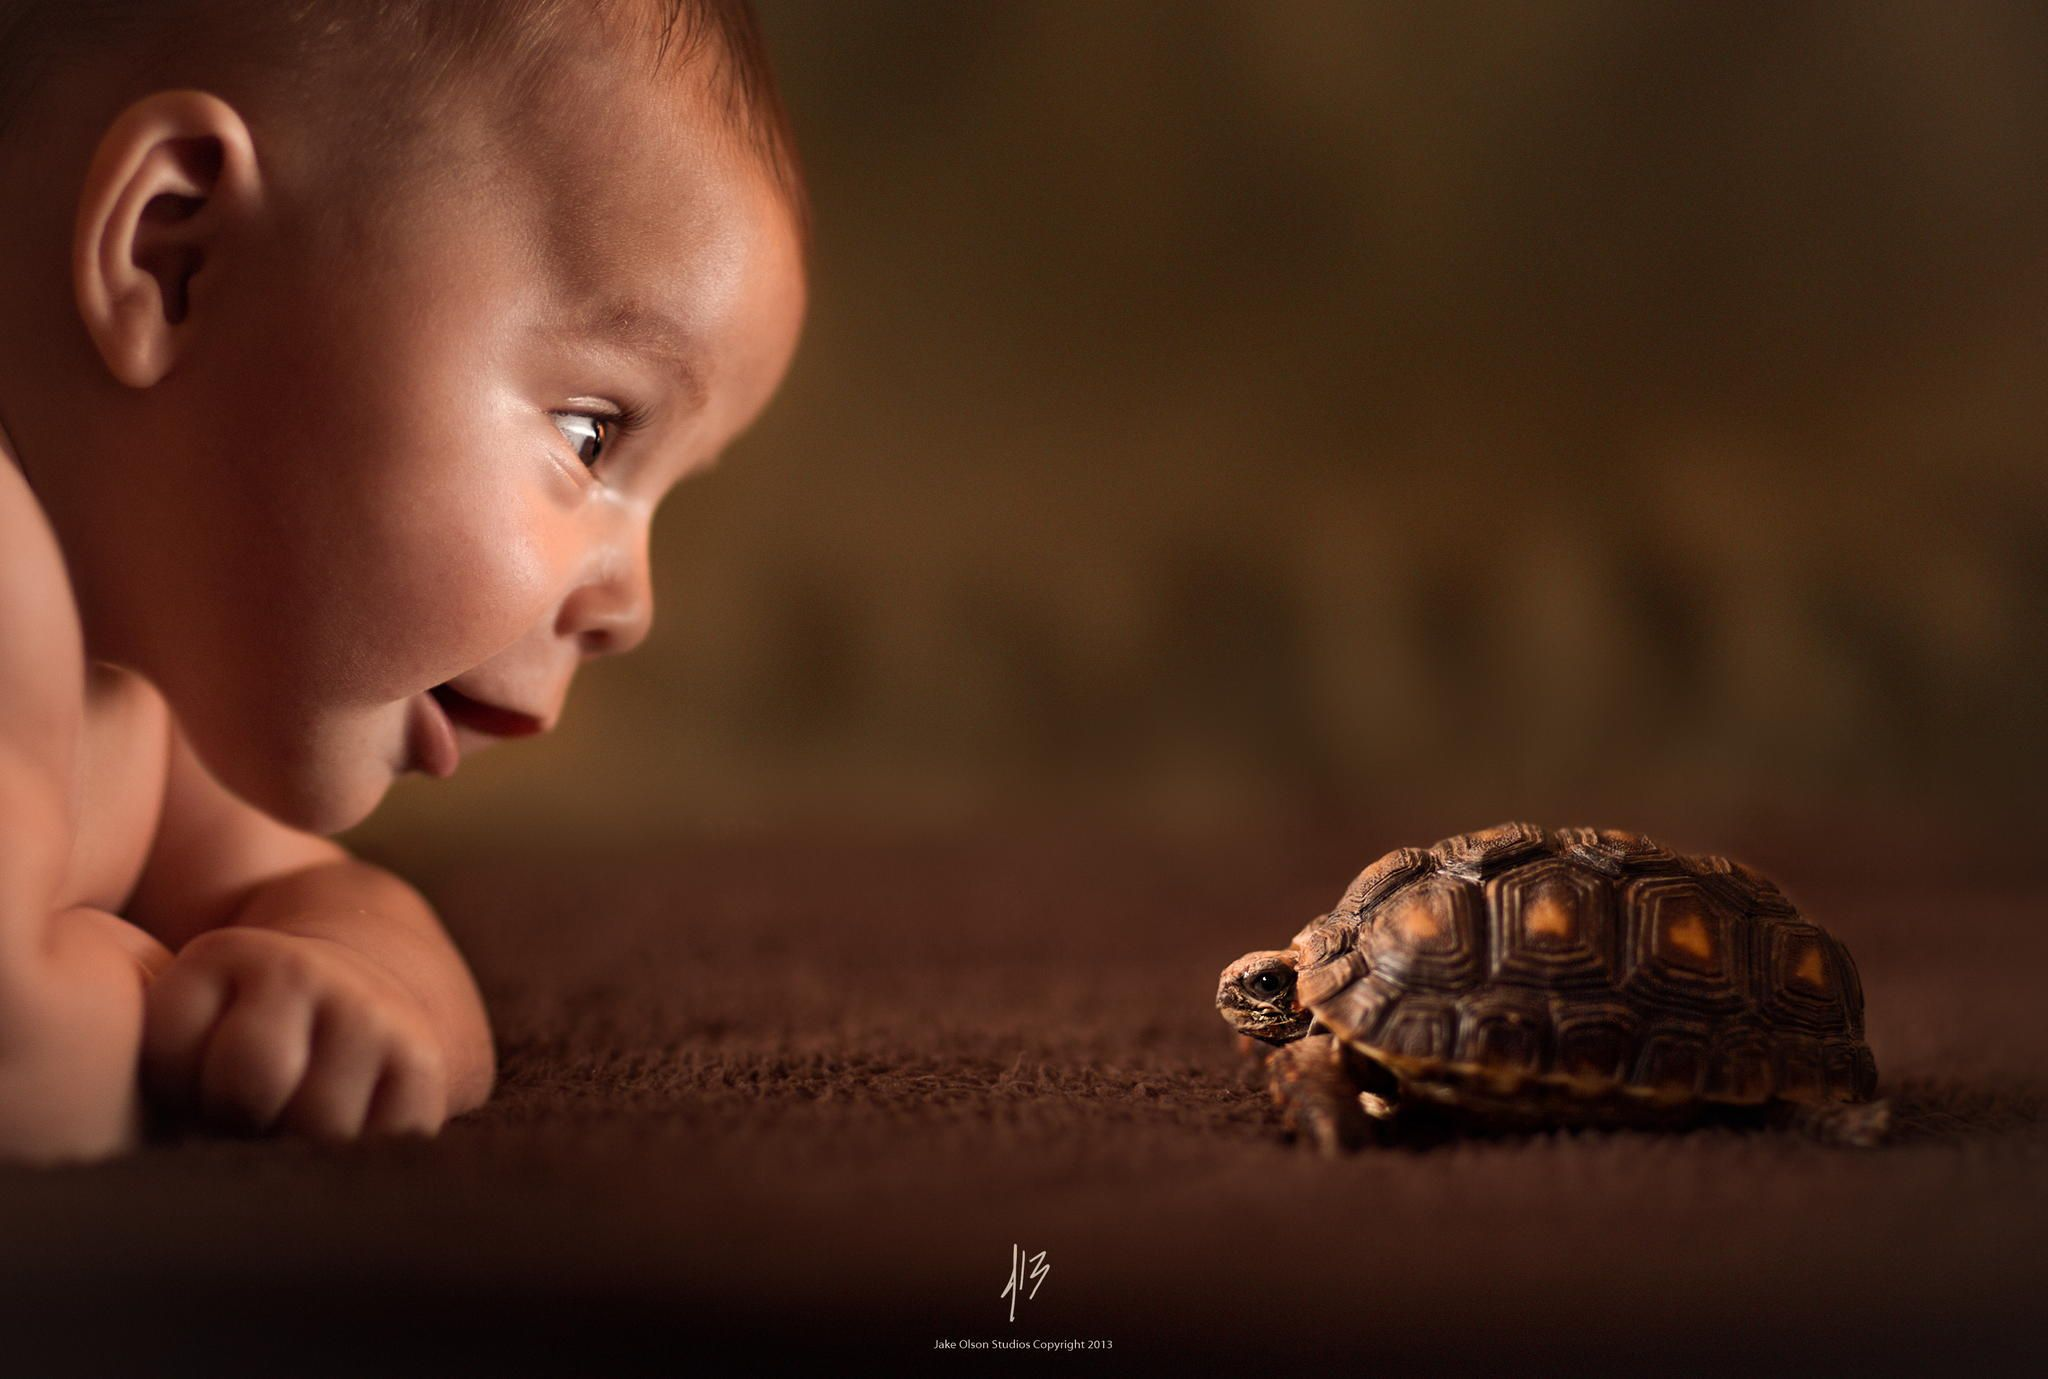 Photograph Babies by Jake Olson Studios on 500px